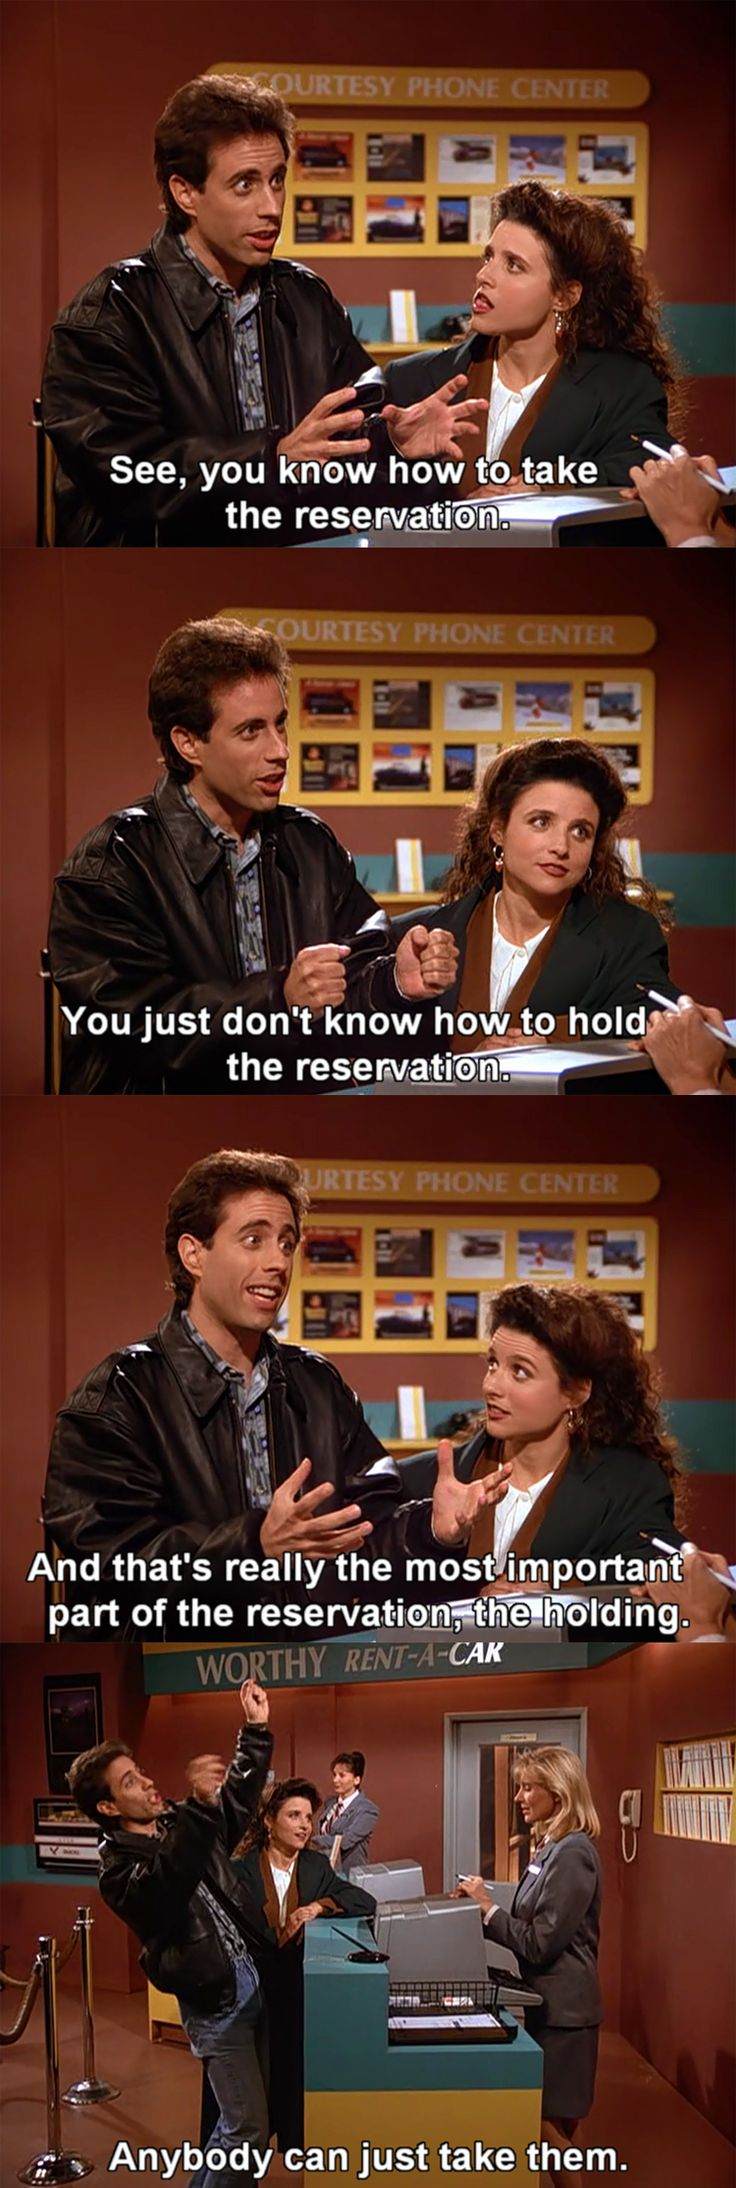 Jerry Seinfeld - Reservation OMG, my family has quoted this on a number of occasions.